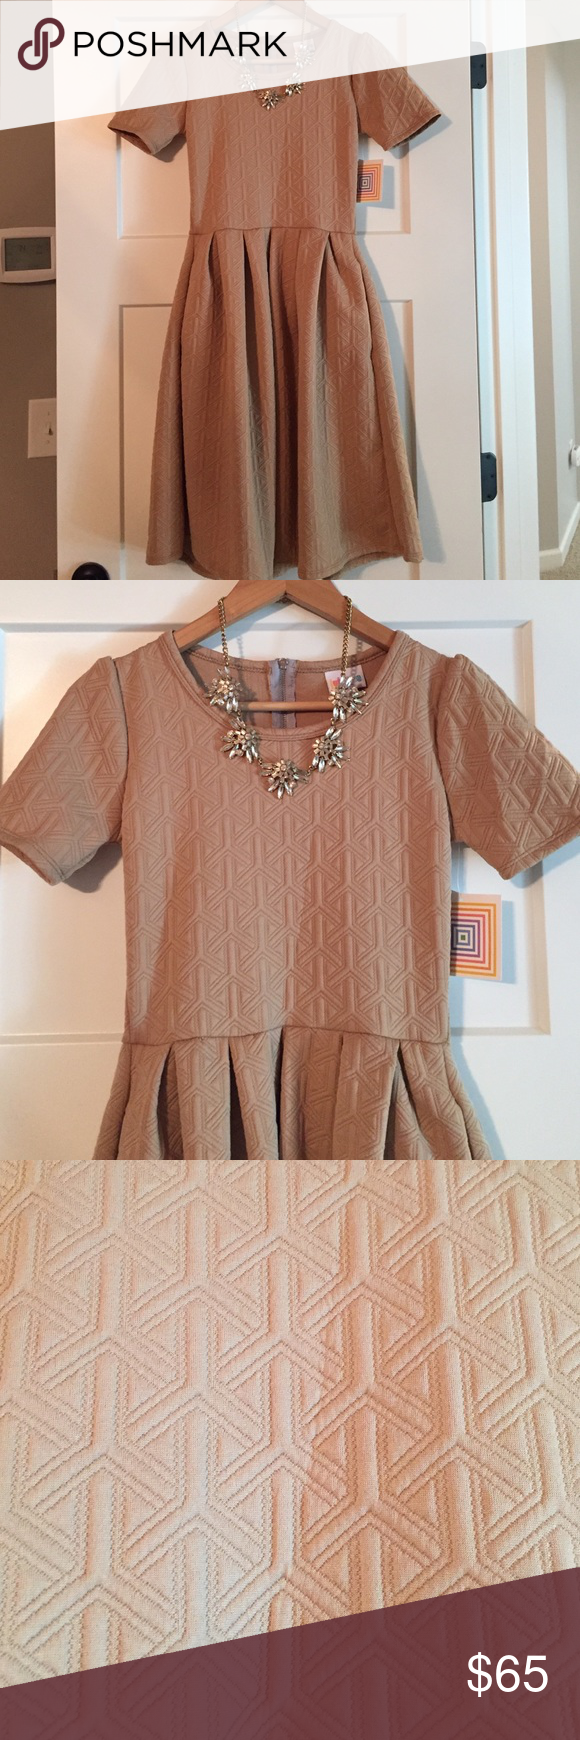 NWT XS tan LulaRoe Amelia dress with pockets This thicker material LulaRoe Amelia dress is NWT and has a gorgeous pattern on the material! It is 96% polyester and 4% spandex. It zips up the back, has pockets, and is super flattering! LuLaRoe Dresses